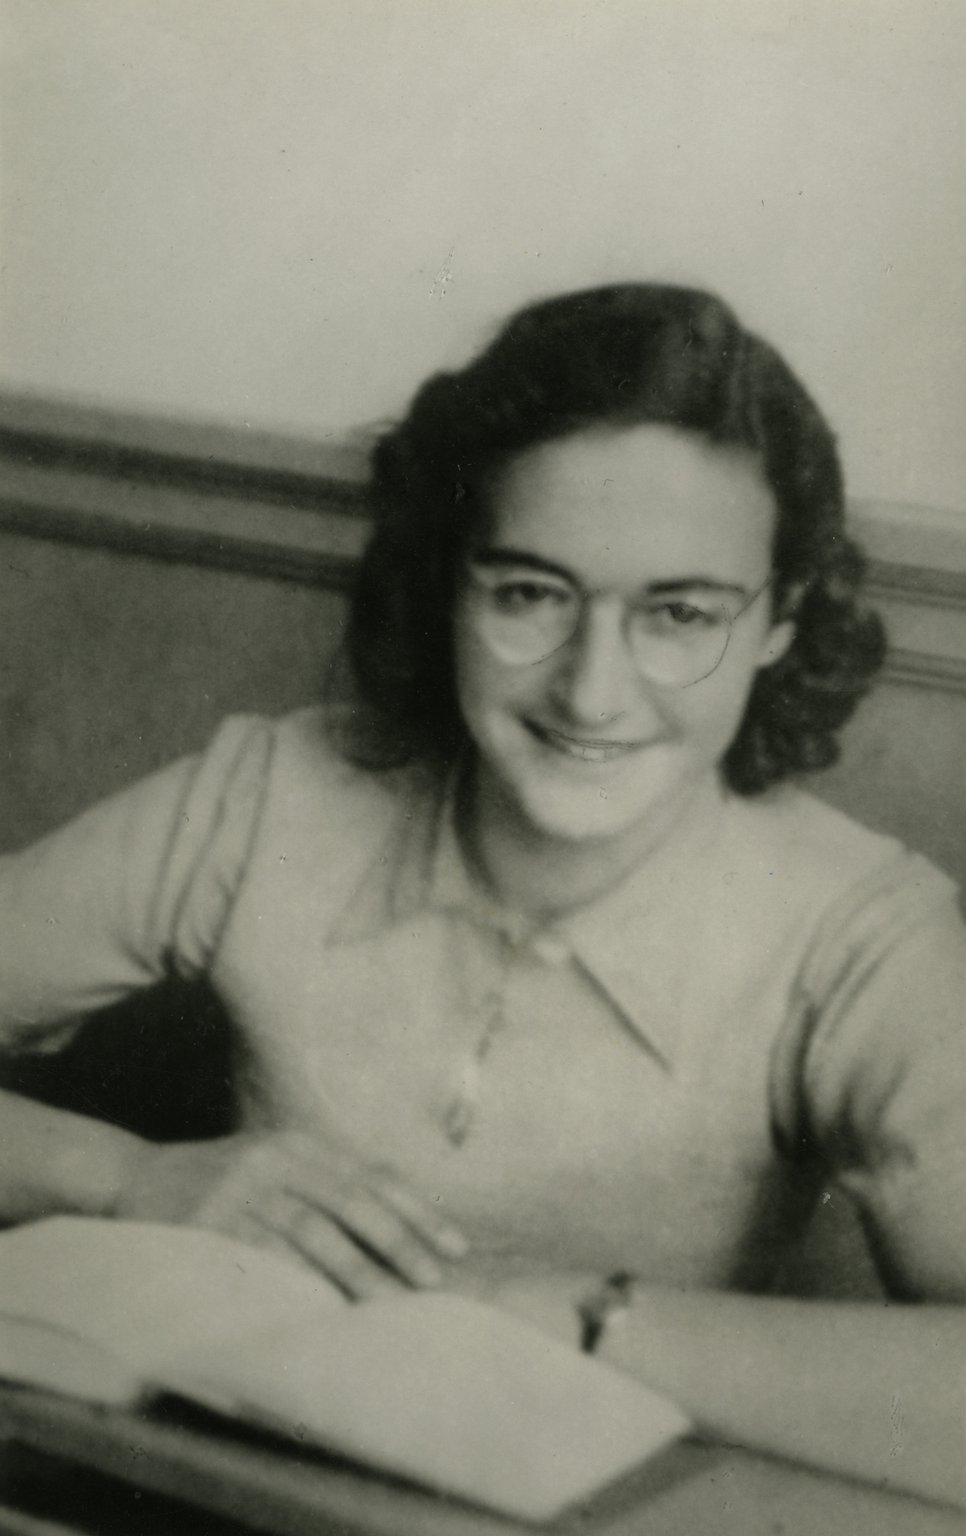 A school photo of Margot Frank at the Jewish Lyceum, December 1941.